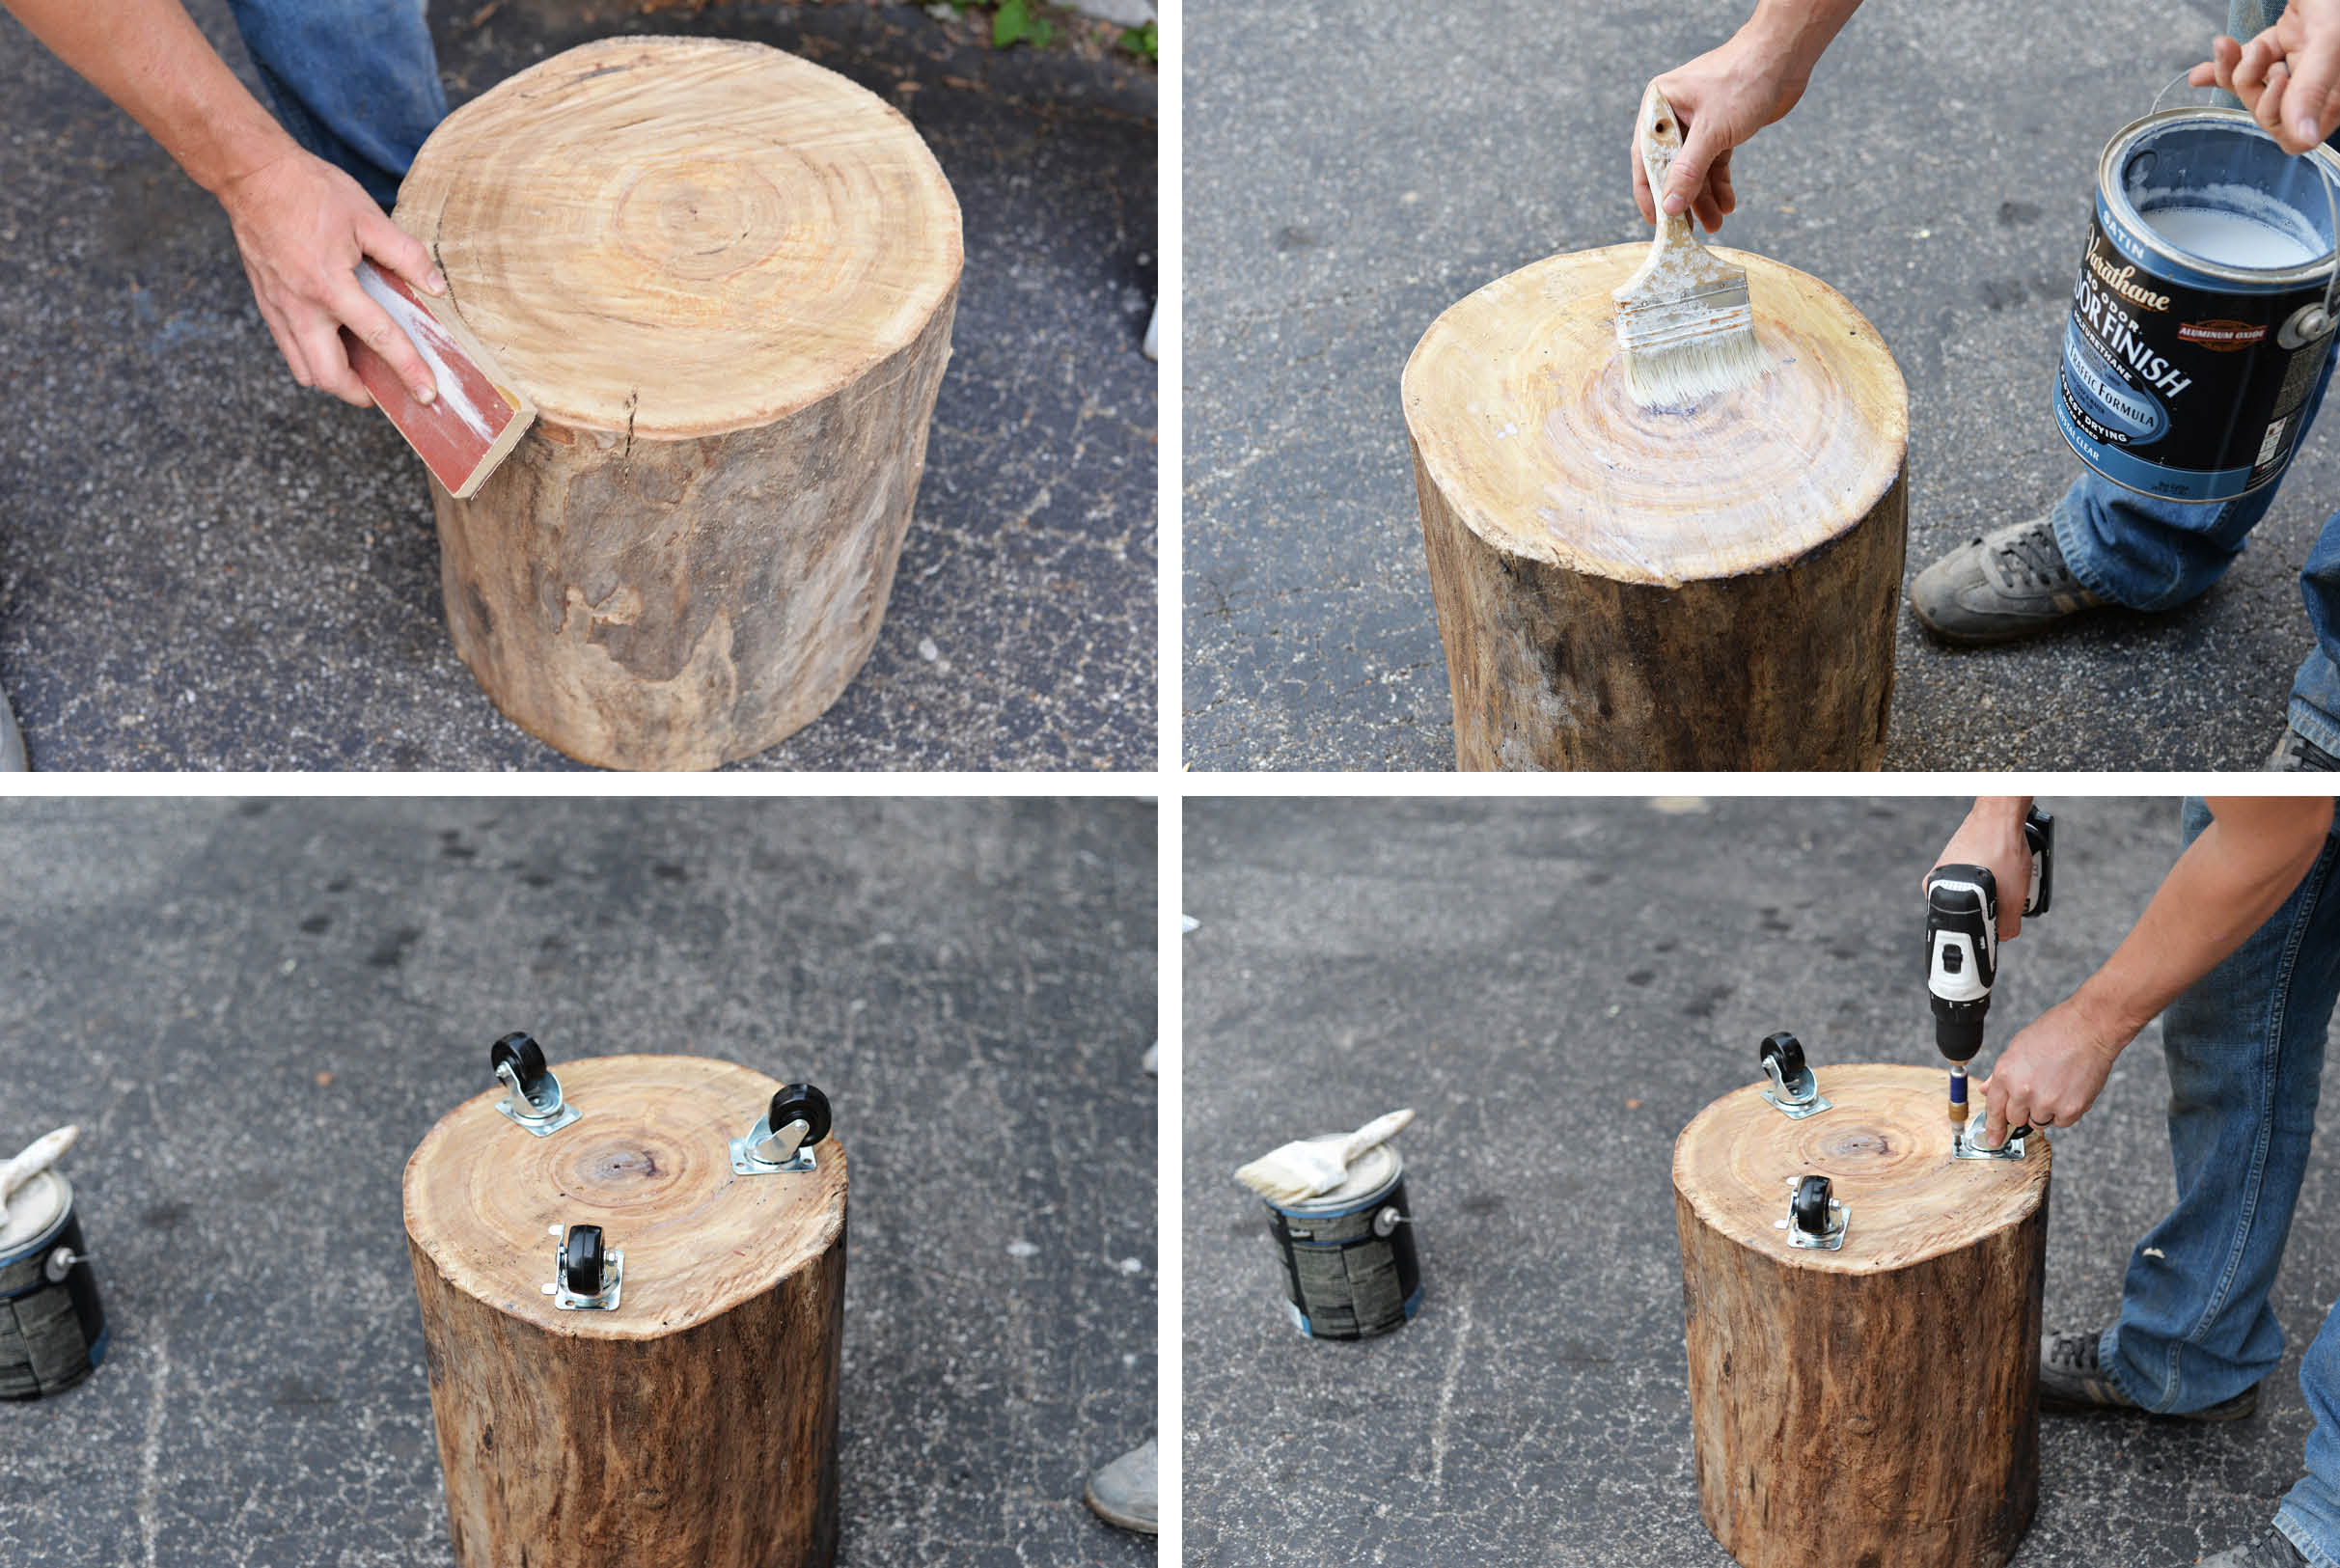 diy tree stump side table wood accent ikea outdoor chairs painted nightstands white patio west elm industrial cute bedside lamps drawer file cabinet battery operated touch cream